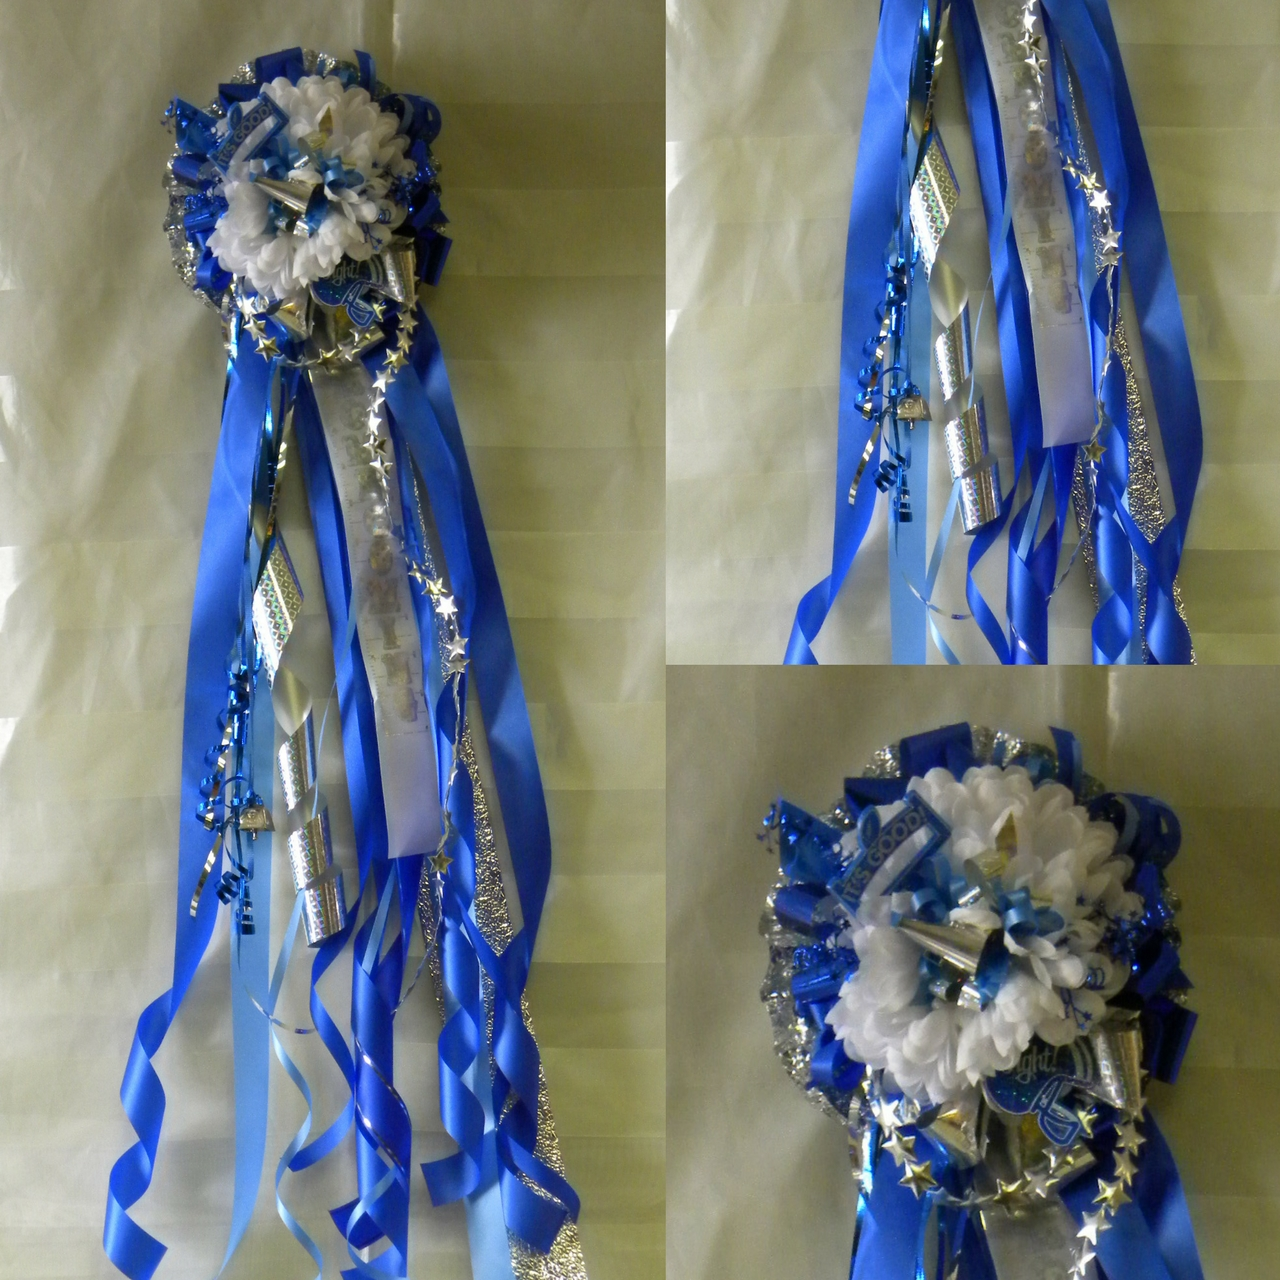 Sam Rayburn High School Homecoming Mums for sale in Pasadena Texas 2